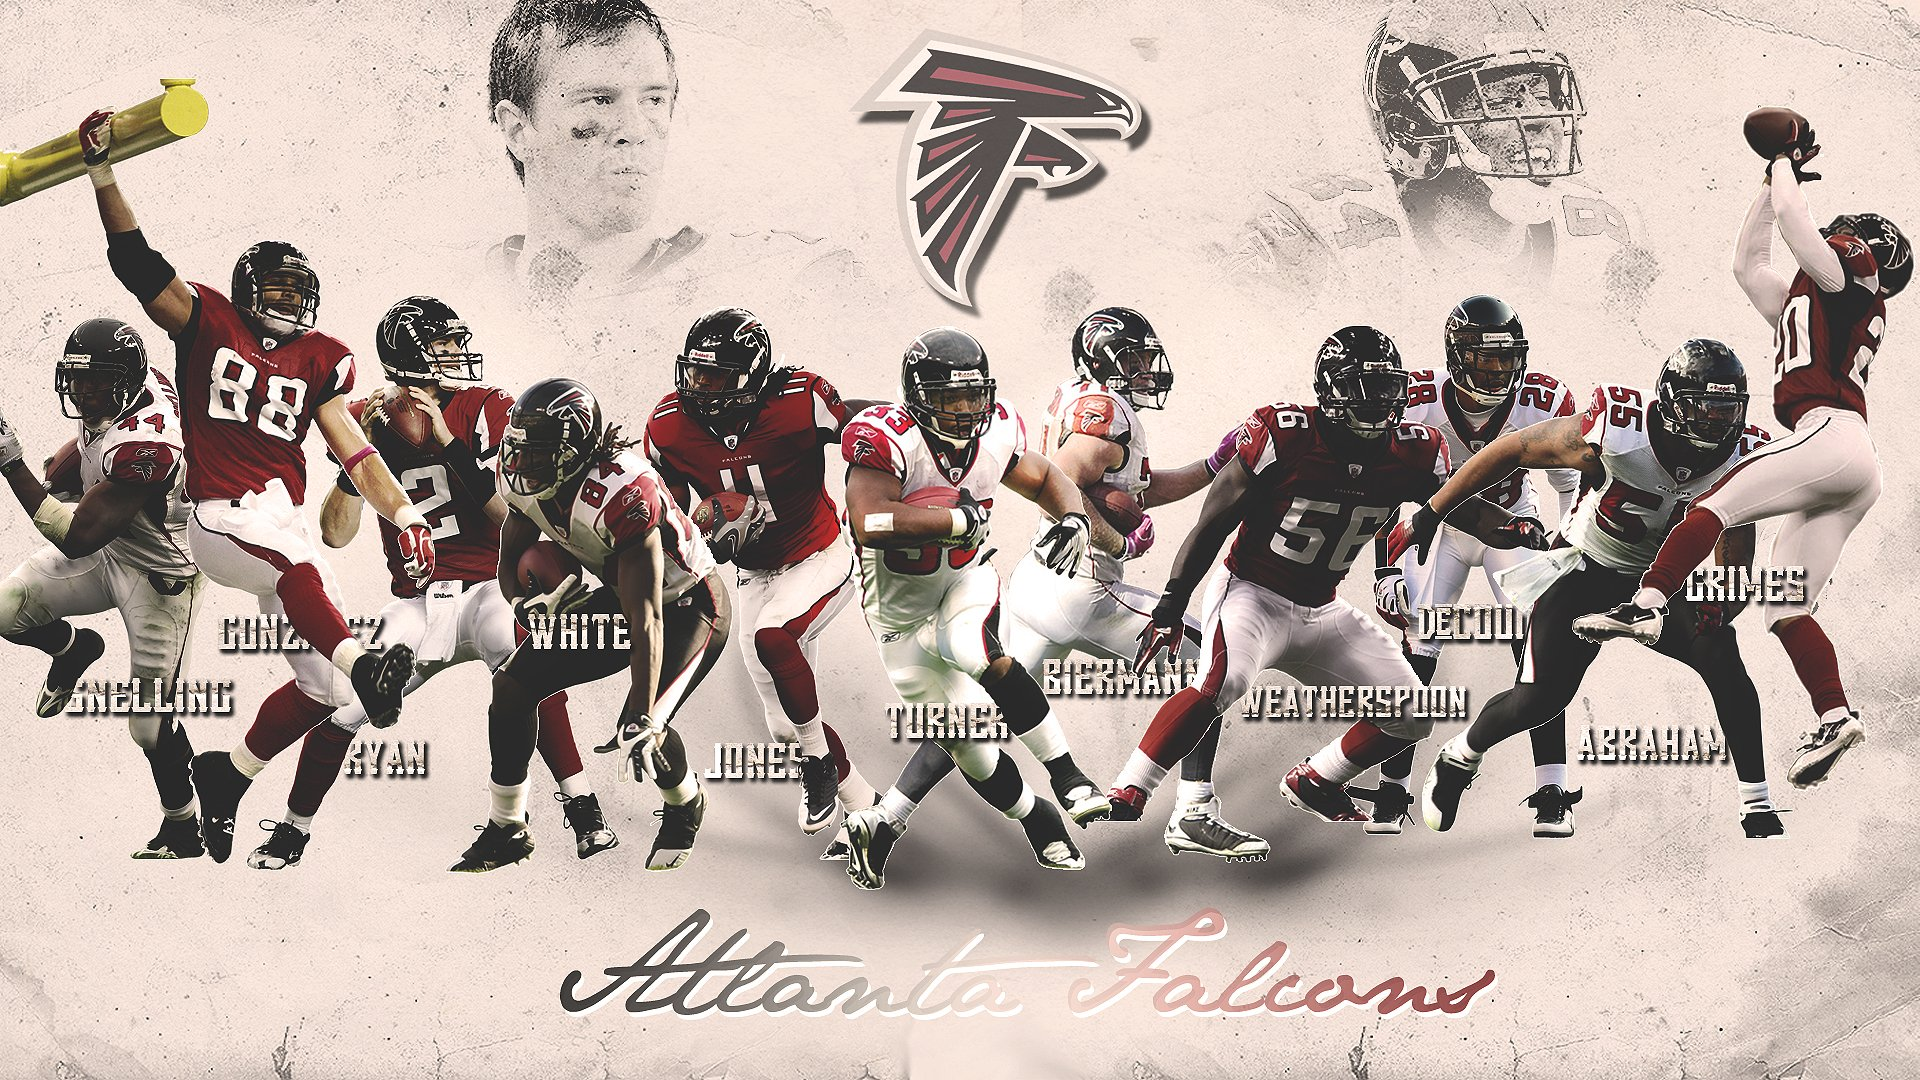 Falcons Iphone Wallpaper: Atlanta Falcons Wallpaper Border